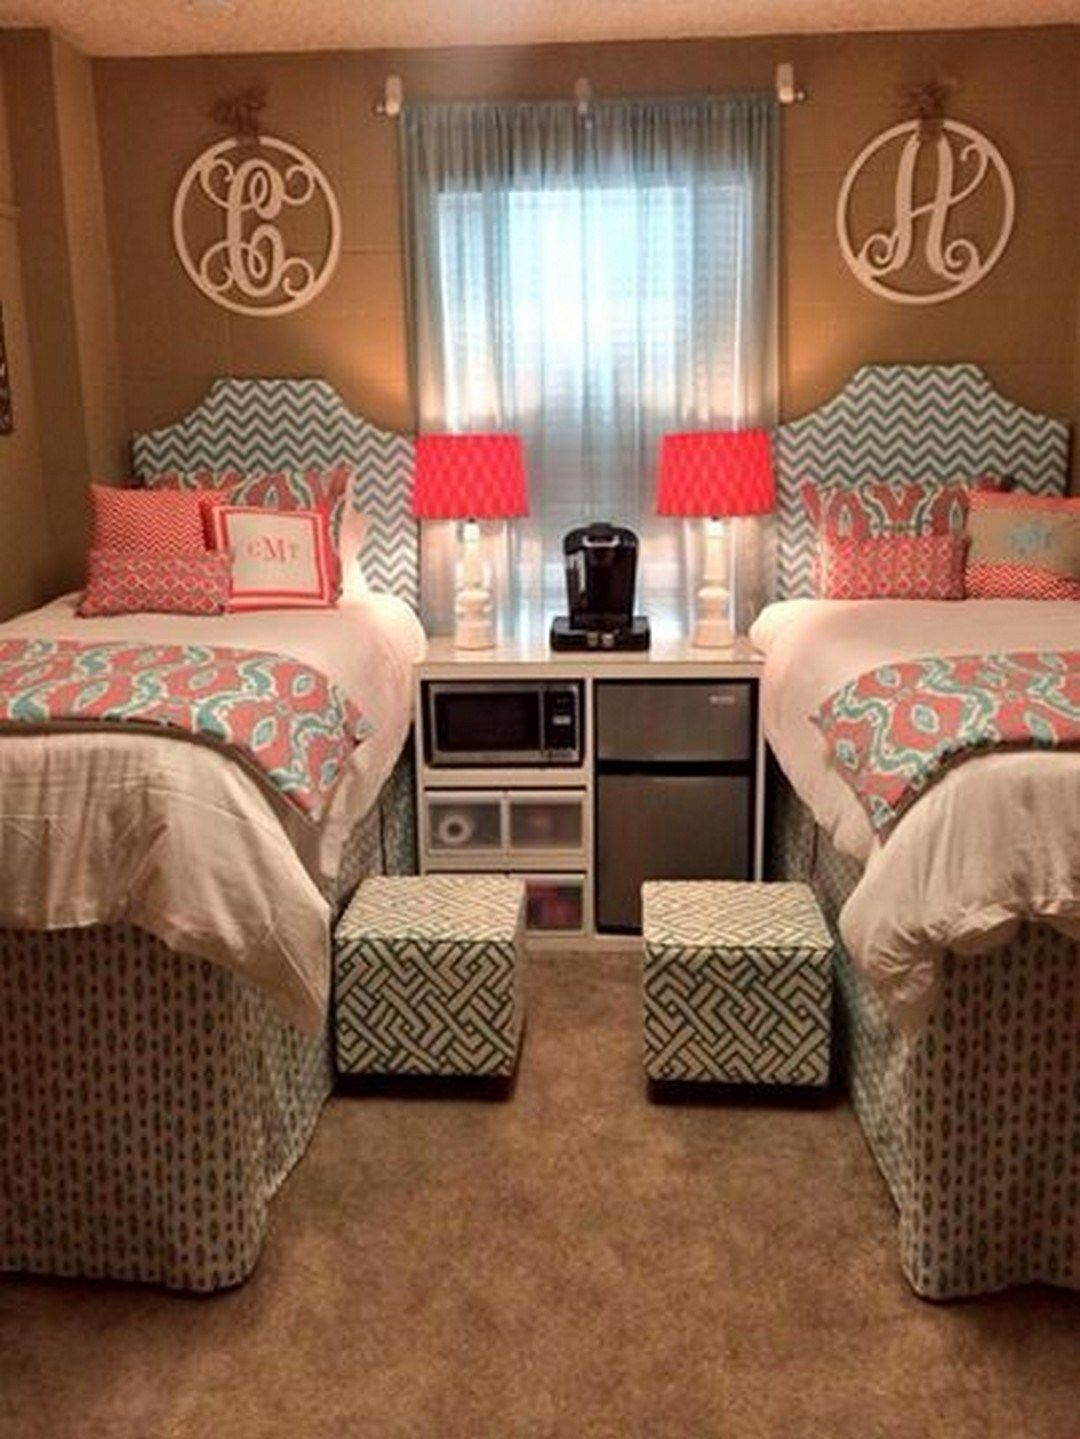 99 Awesome And Cute Dorm Room Decorating Ideas (101 ... on Pretty Room Decor For Girl  id=77869